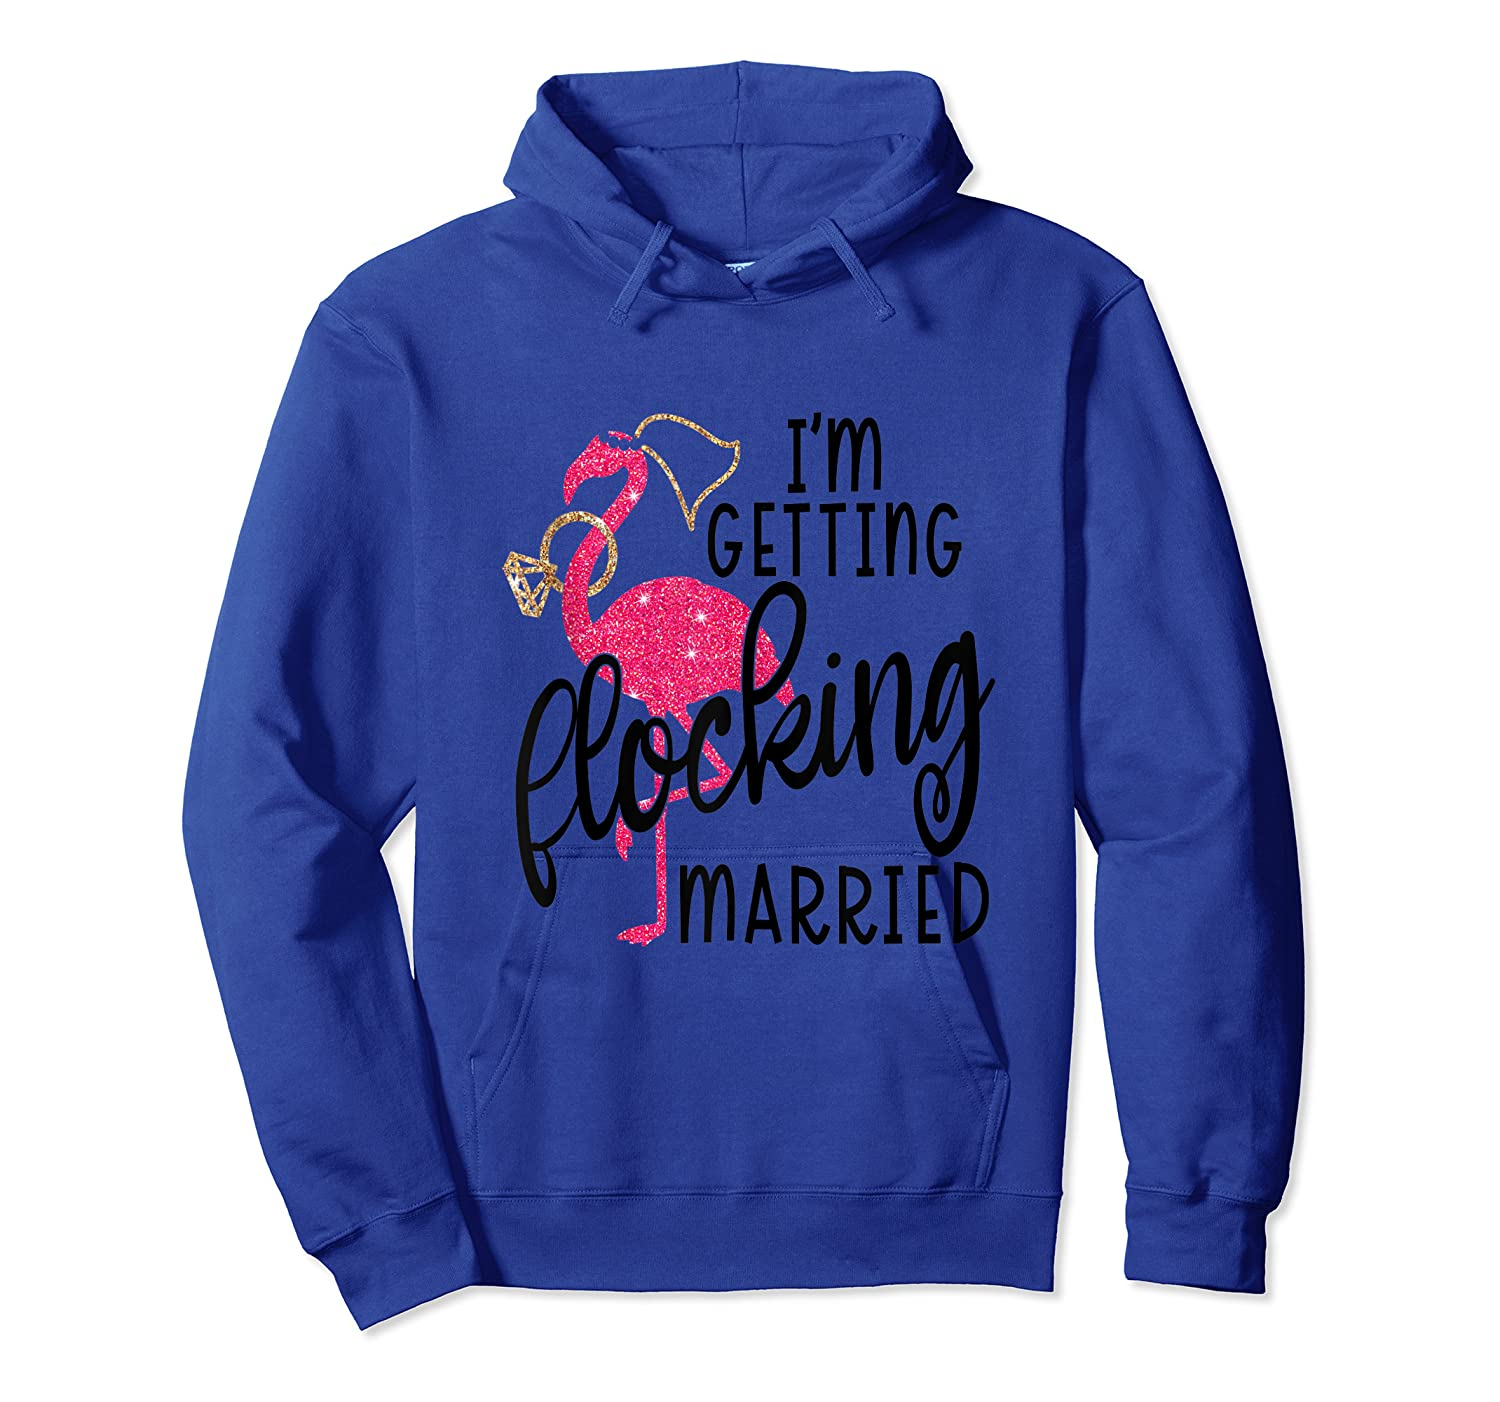 Flamingo Bachelorette - I'm Getting Flocking Married Tank Top Shirts Unisex Pullover Hoodie